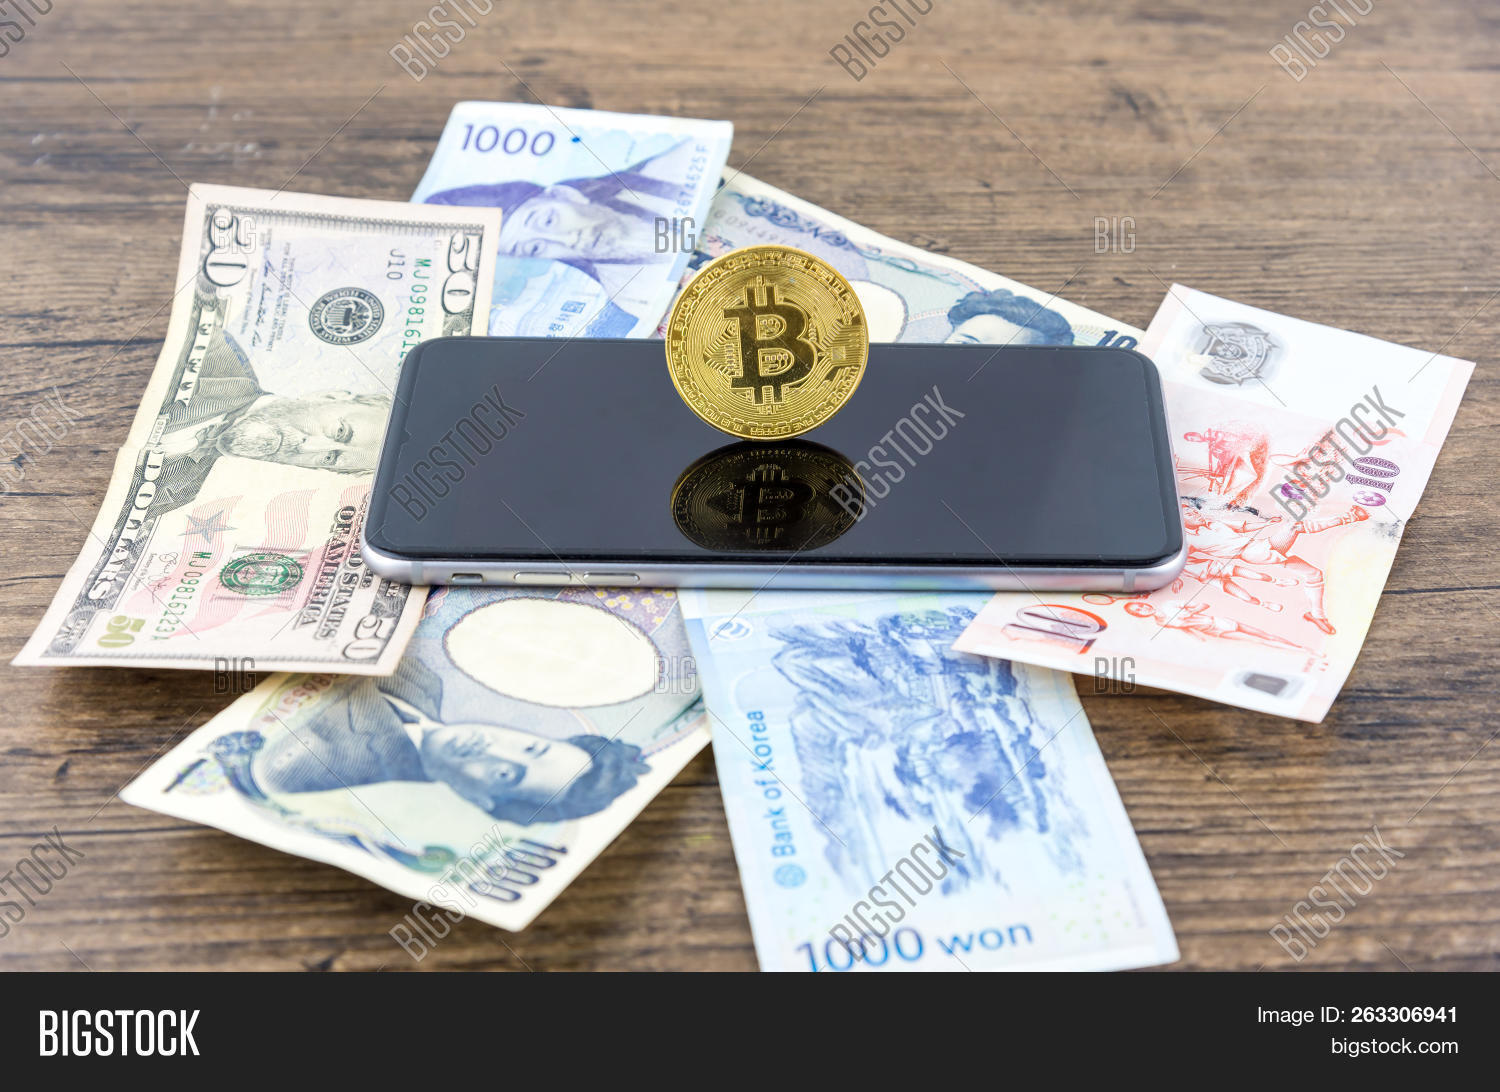 Businessman Shake Hands On Bitcoins And Banknotes Dollars Money Won Yen The Form Of Digital Cryptocurrency An Intermediary In Exchange Goods